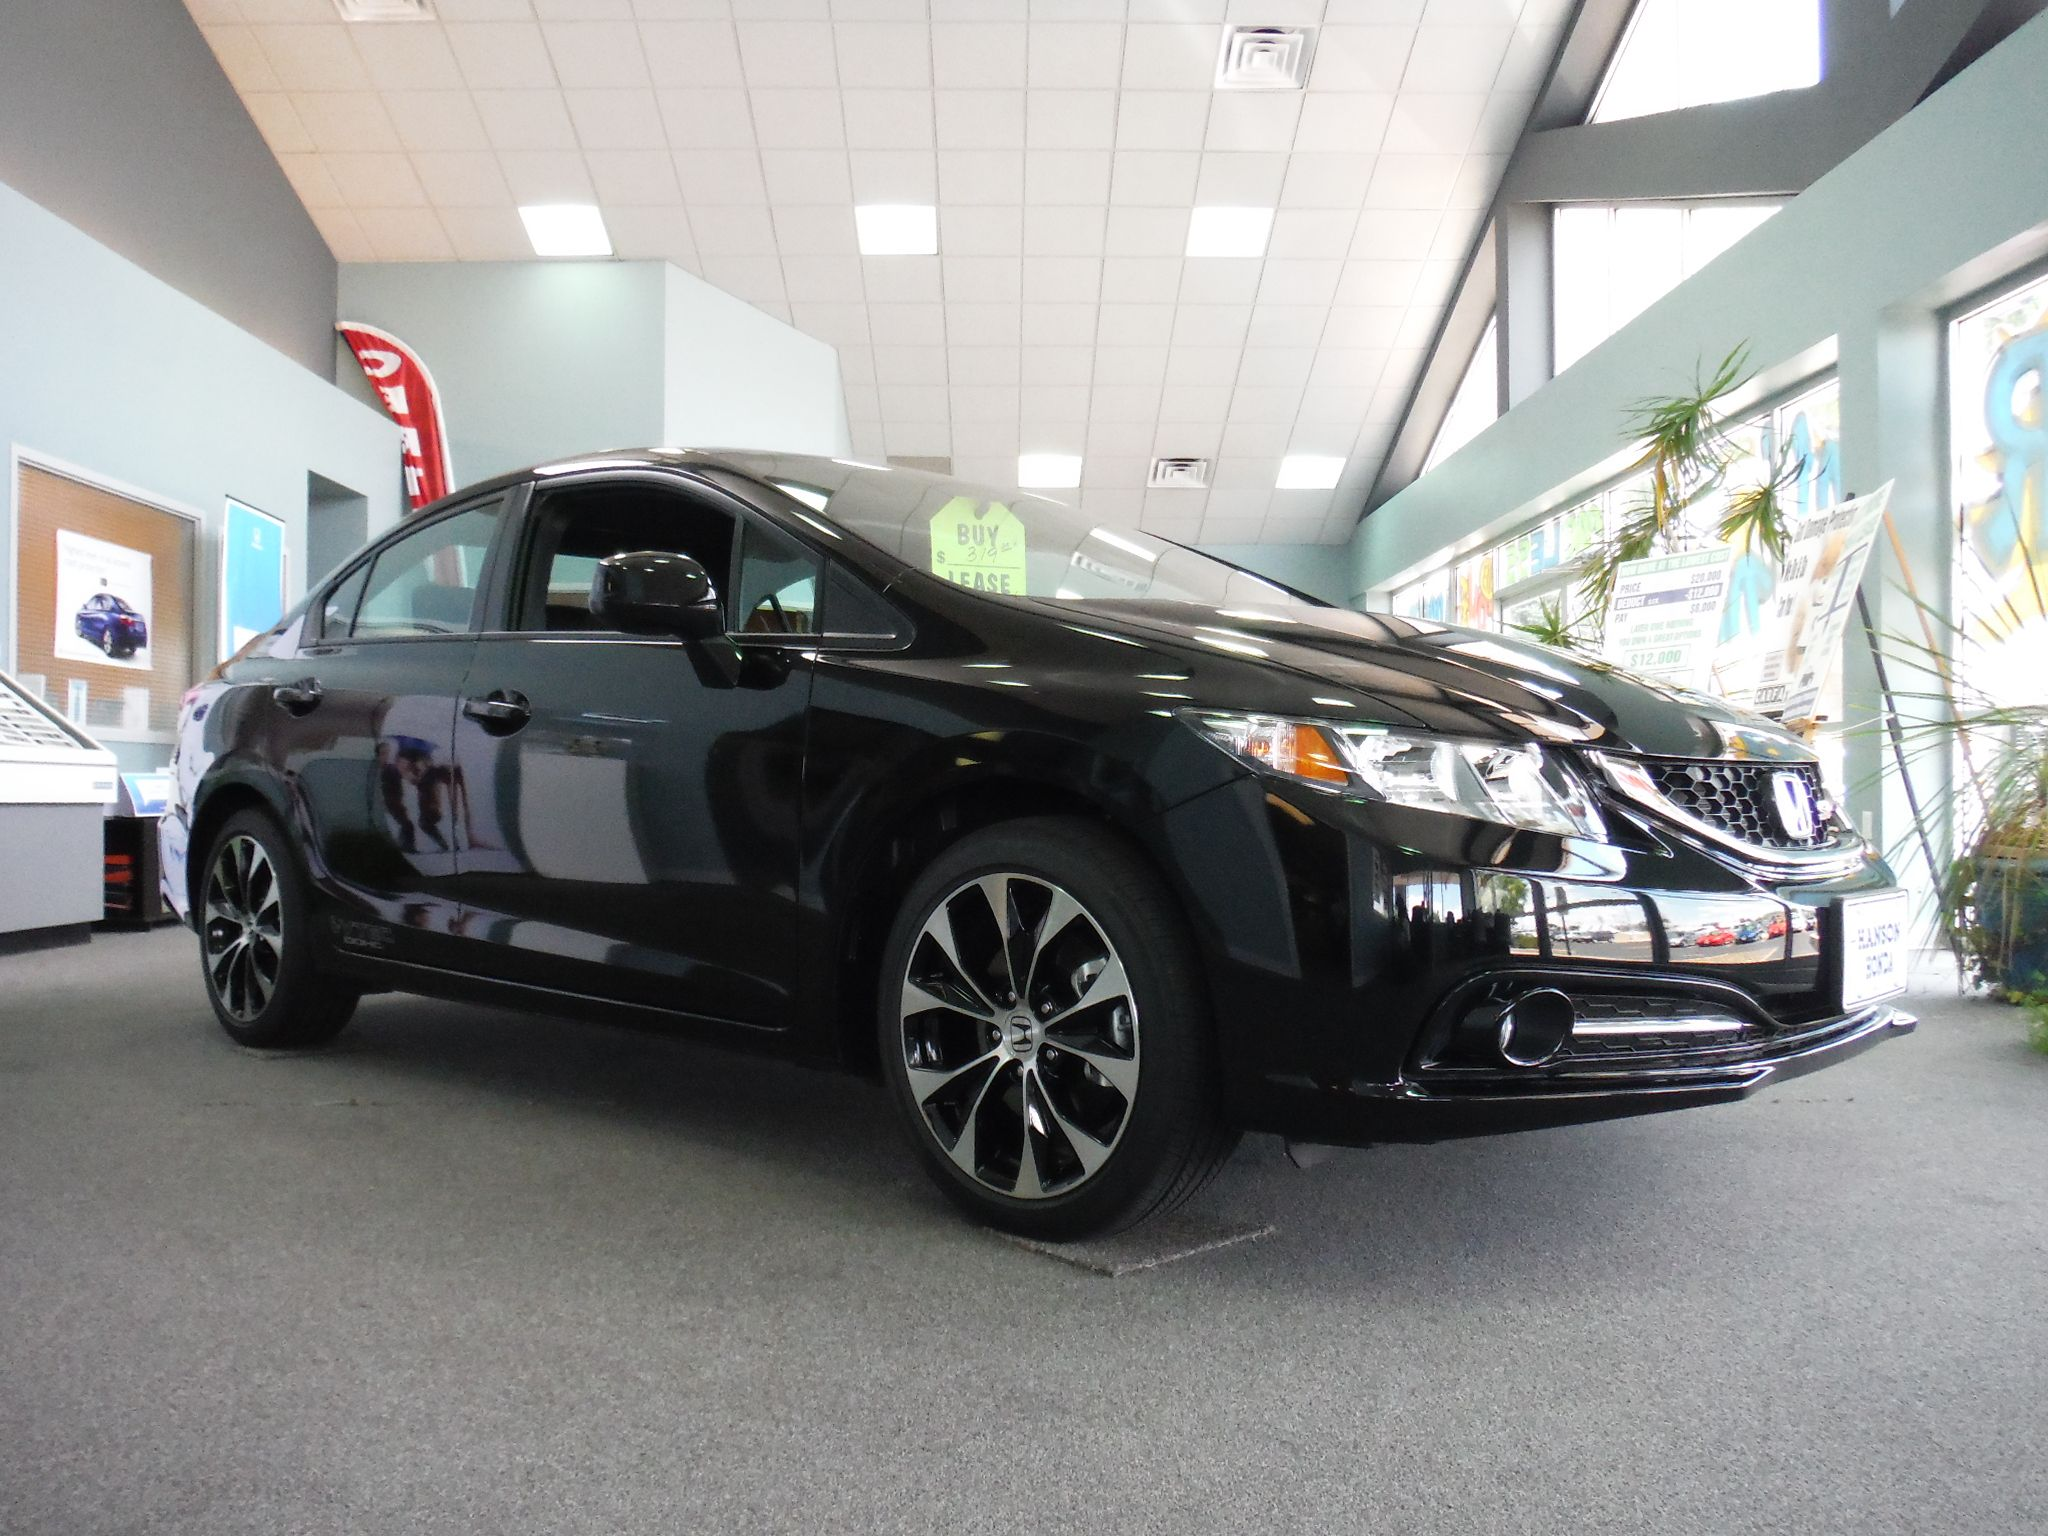 Incroyable 2013 HONDA CIVIC SI SEDAN W/ 201 HP (Crystal Black Pearl)